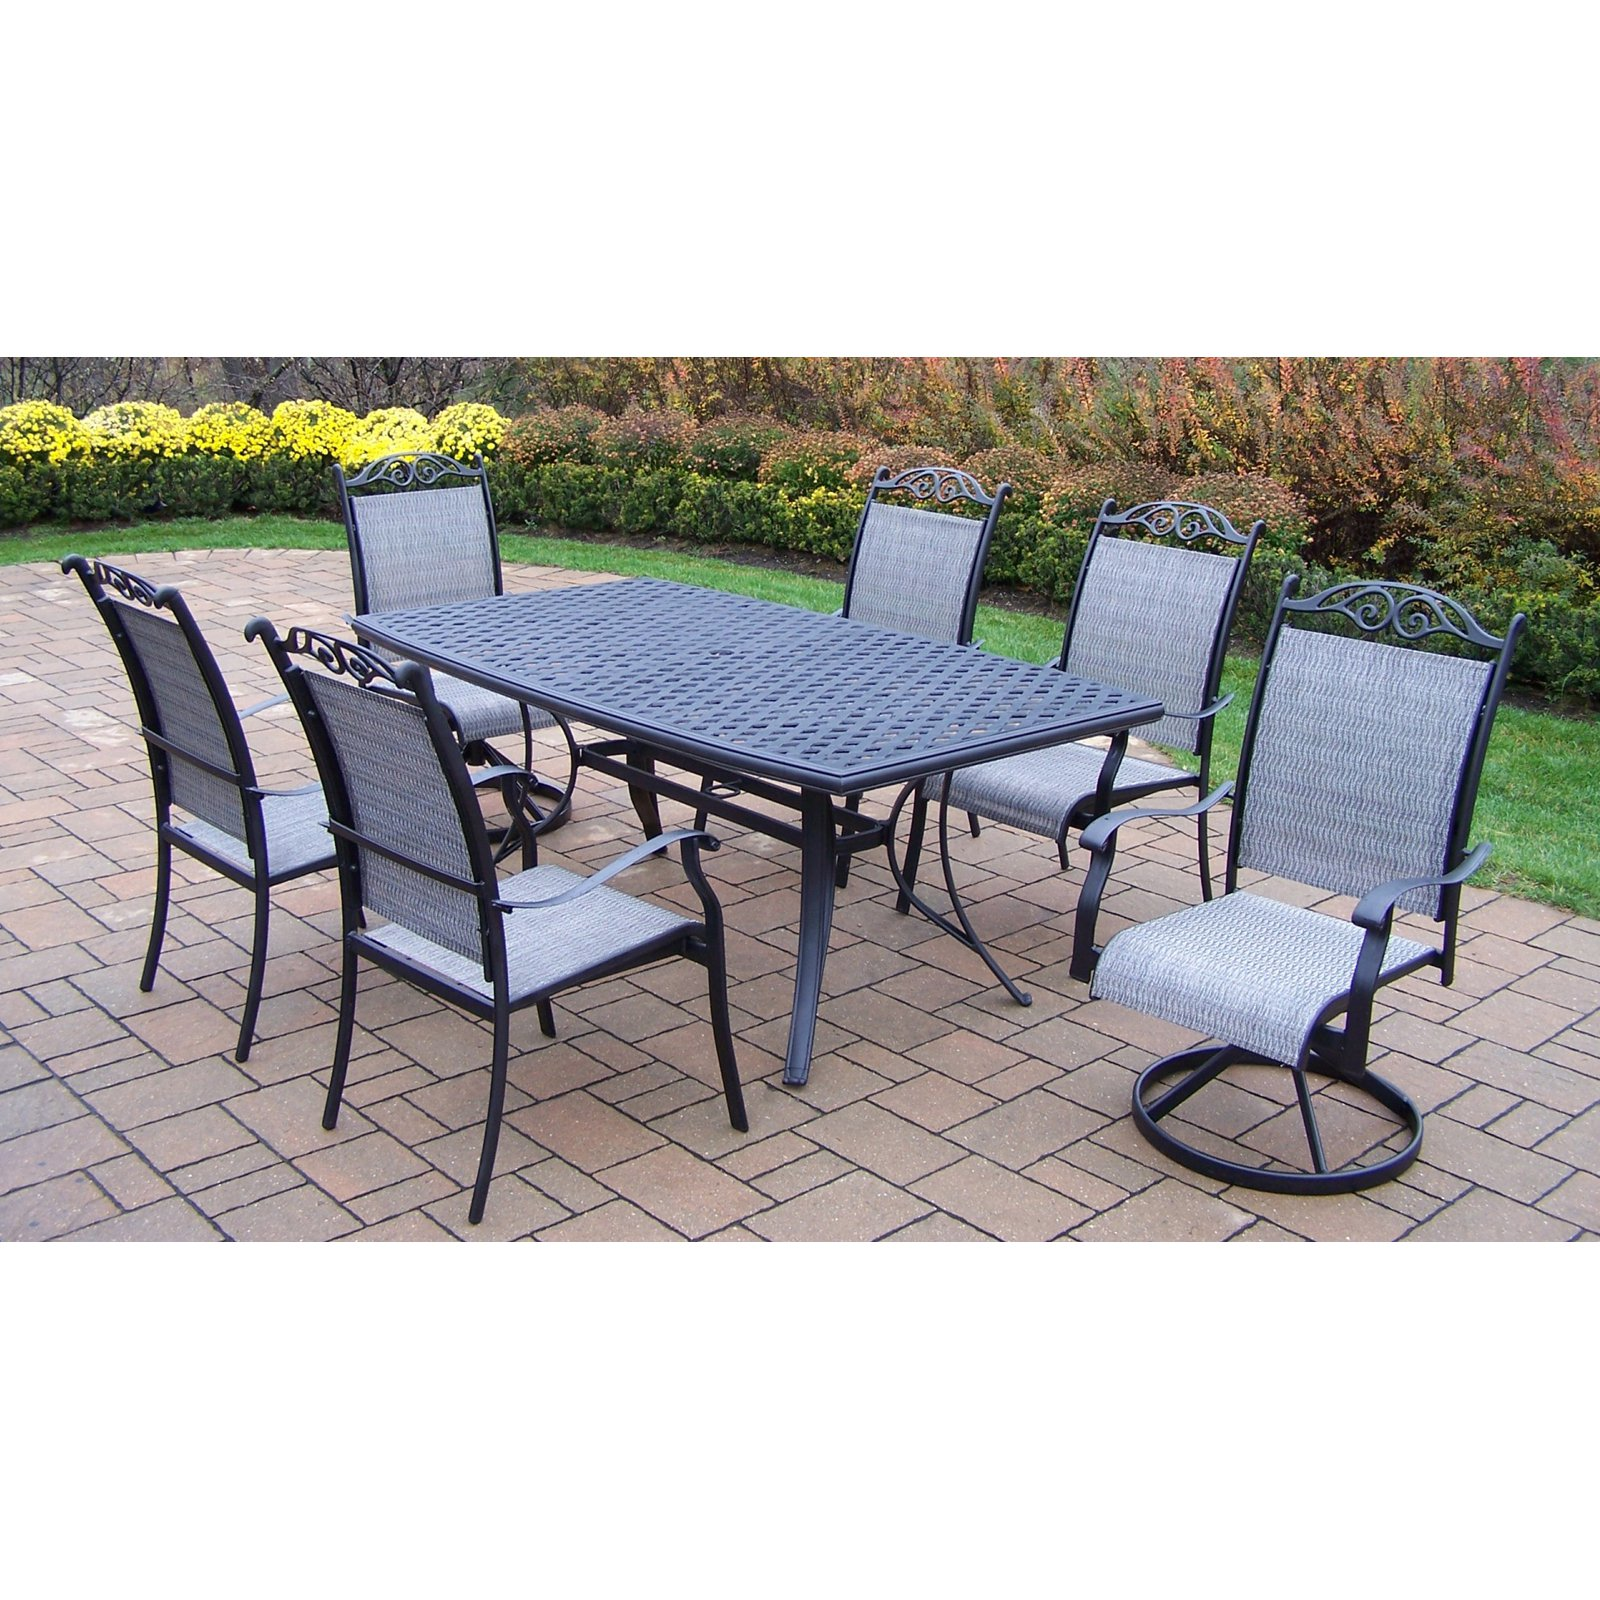 Oakland Living Cascade 7 Piece Sling Patio Dining Set with Boat Shape Table